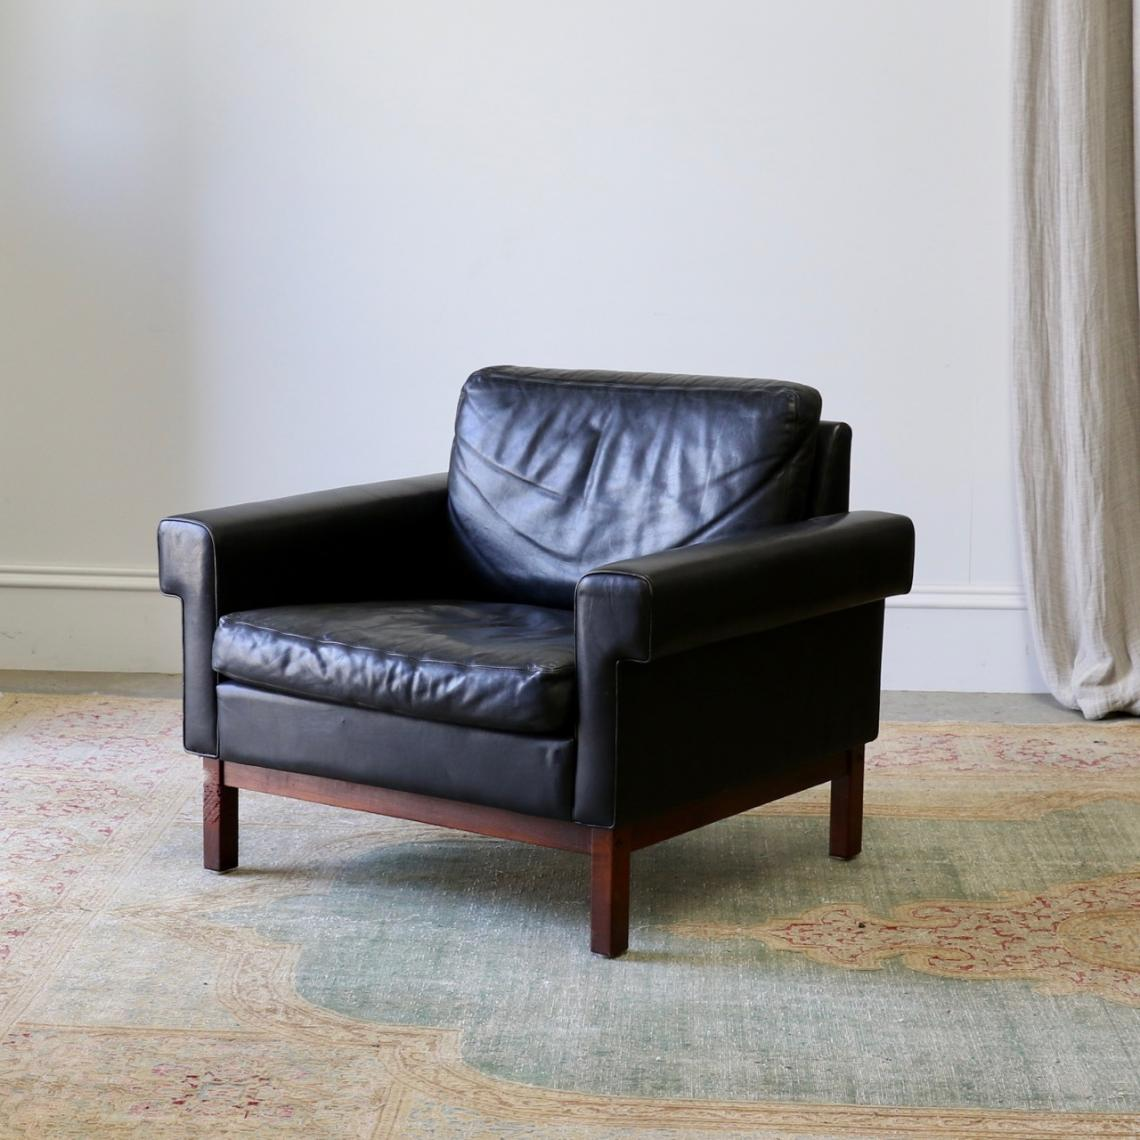 113-96 - Mid-Century Leather Armchair